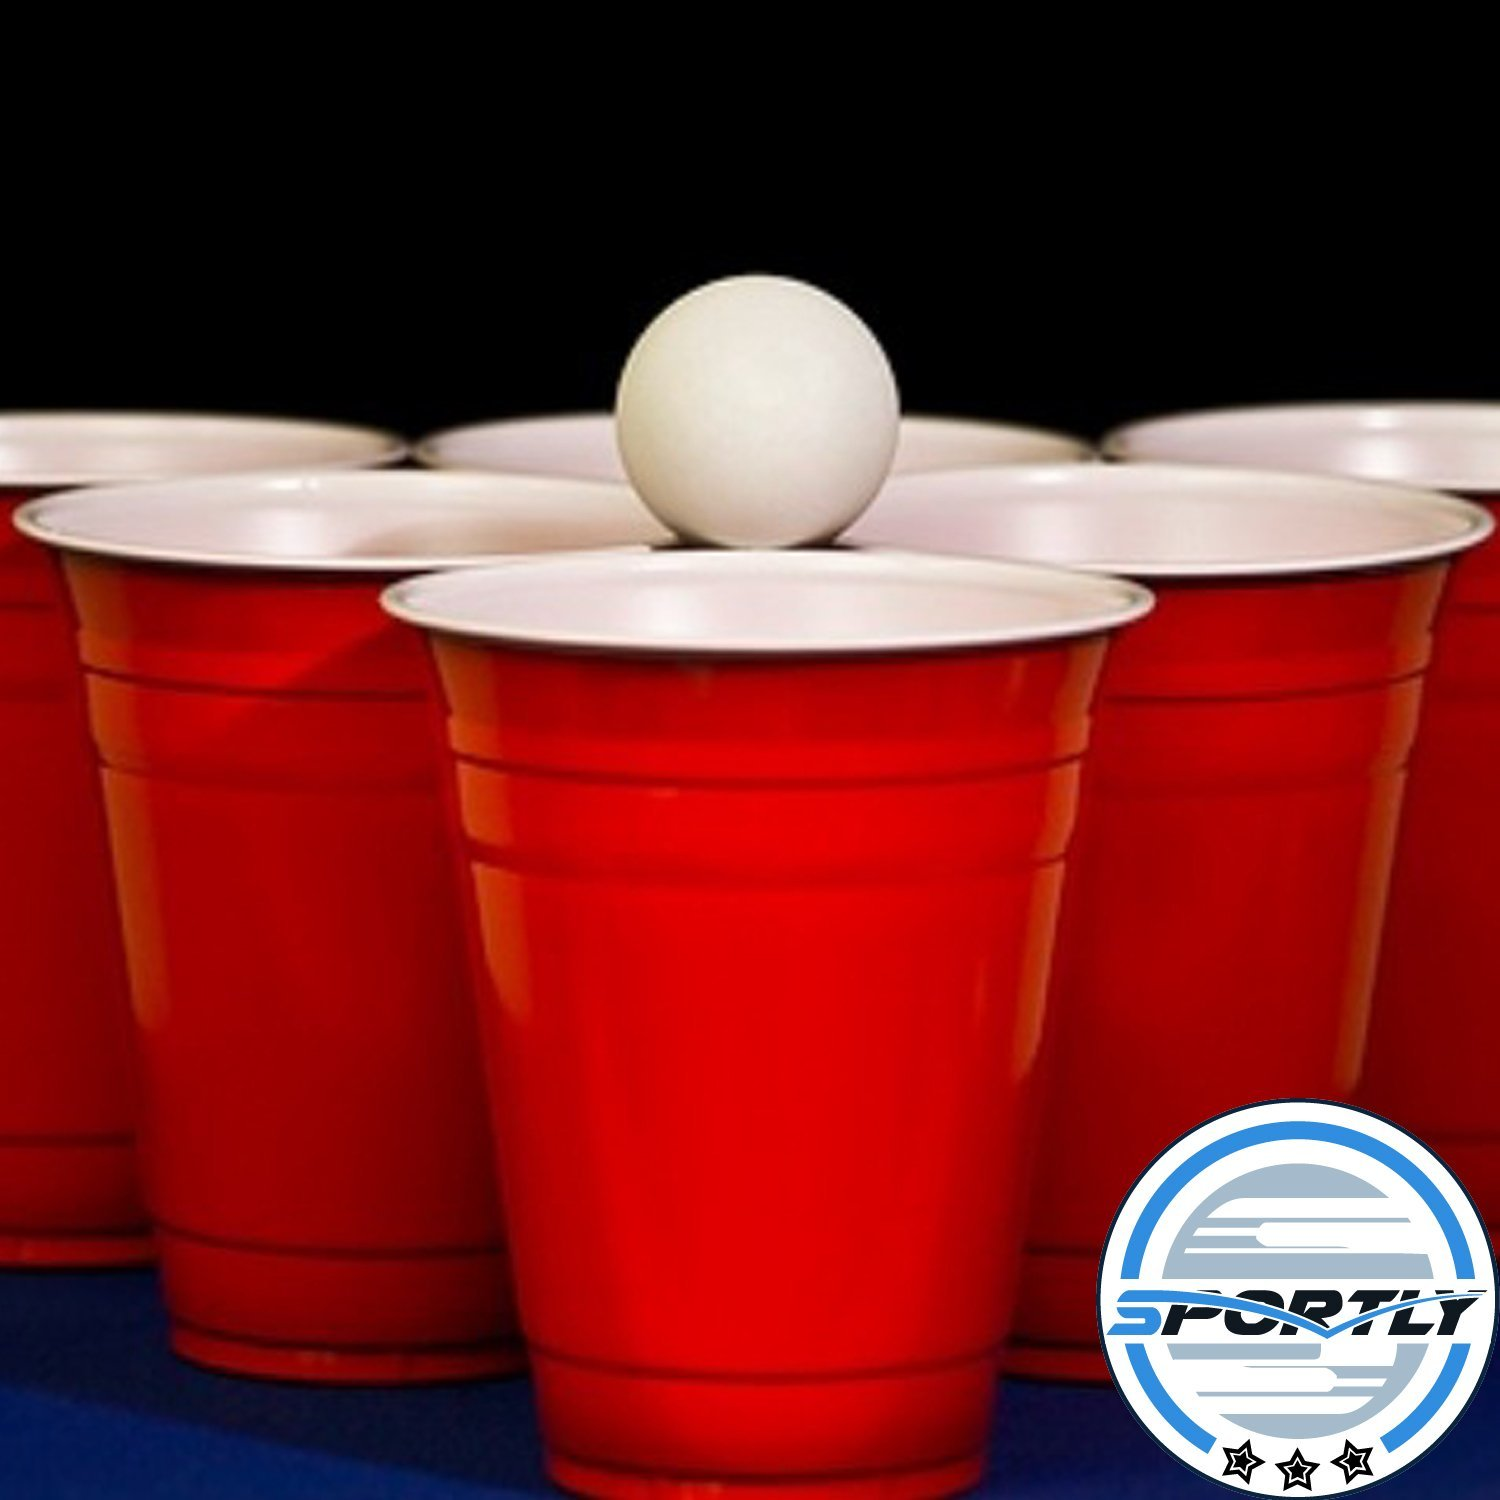 Beer Pong Balls, 48 pack, 38mm, Great for Table Tennis & Ping Pong  Tournaments, Carnival Games, Parties, By Sportly